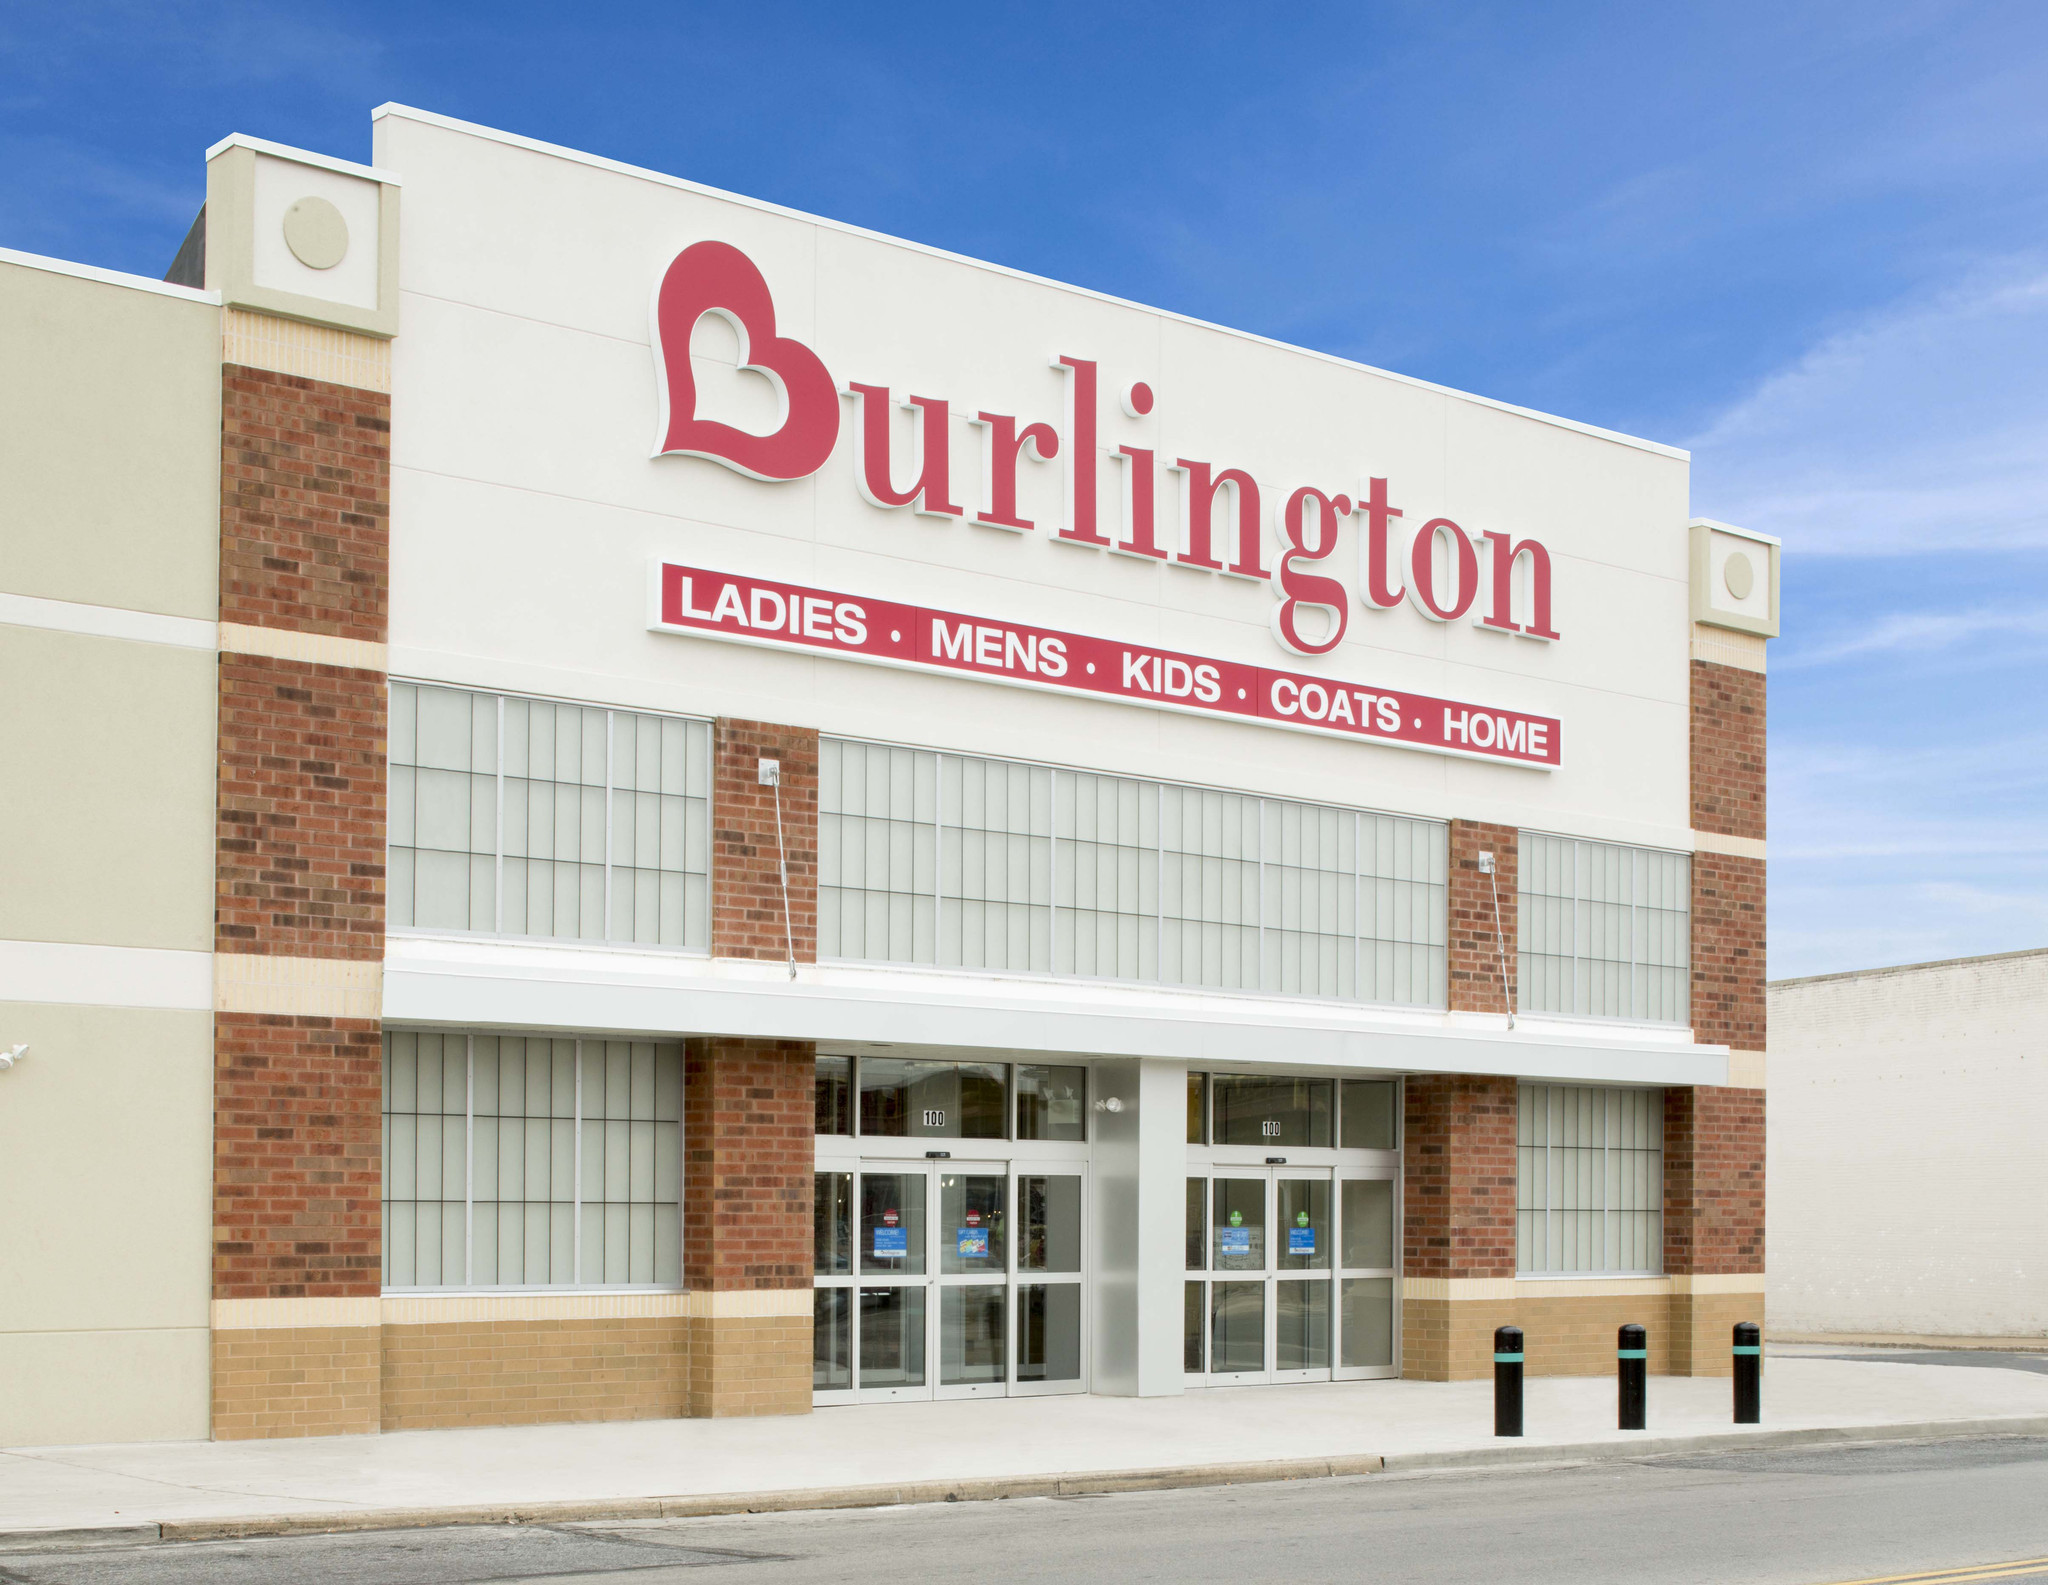 Hollywood Burlington to open in March; job fair set for Jan. 14-15